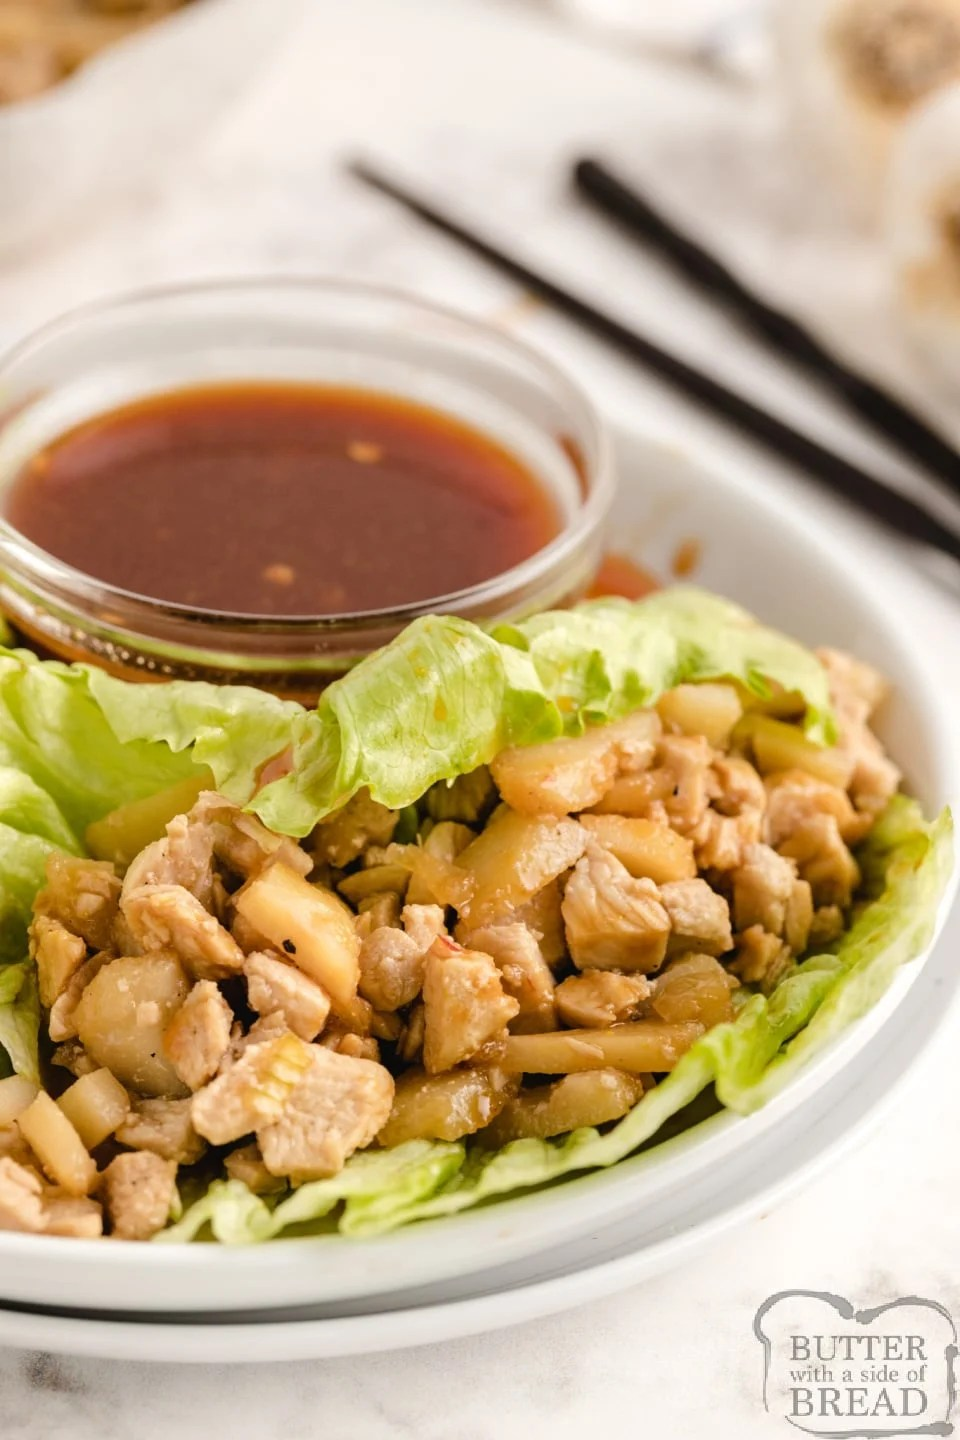 Chicken Lettuce Wraps made with chicken, water chestnuts, onion and garlic in a leaf of lettuce and then dipped in a delicious homemade Asian sauce. Easy chicken lettuce wrap recipe that is perfect as a low-carb appetizer or main dish.